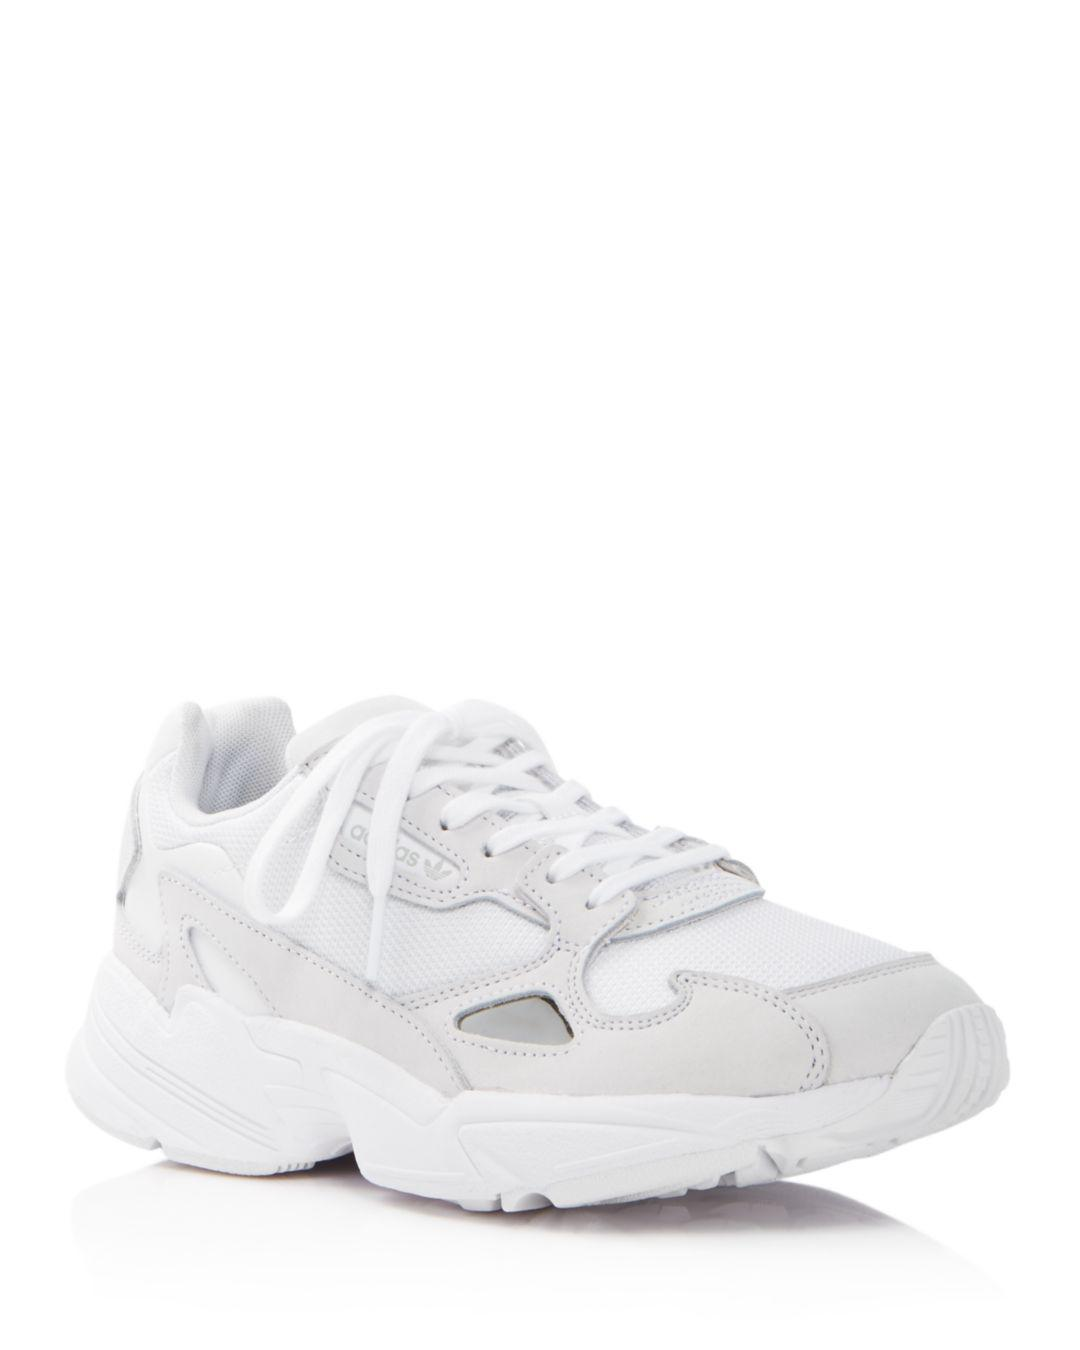 check out 9d7c9 070c5 adidas Women s Falcon Suede   Leather Lace Up Sneakers in White - Lyst